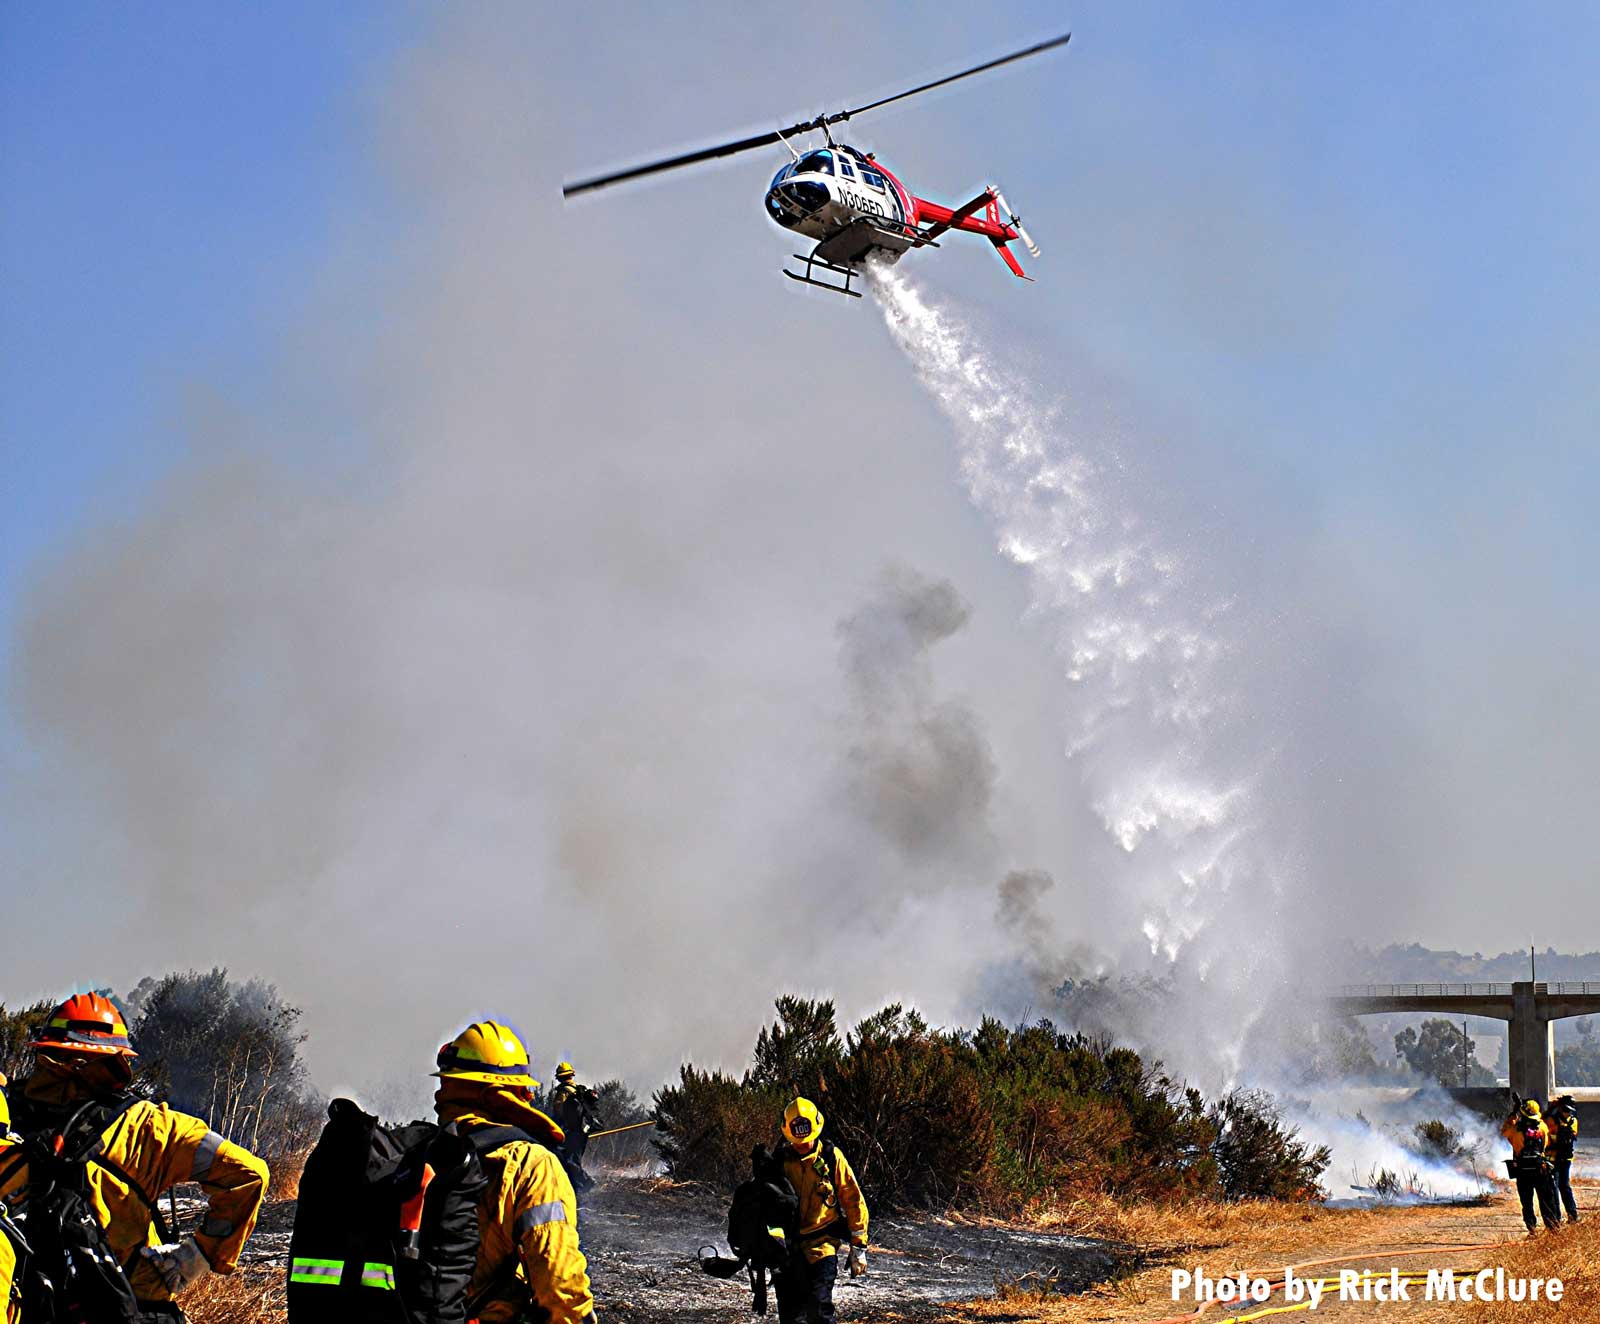 Firefighters observe helicopter making a drop on vegetation fire